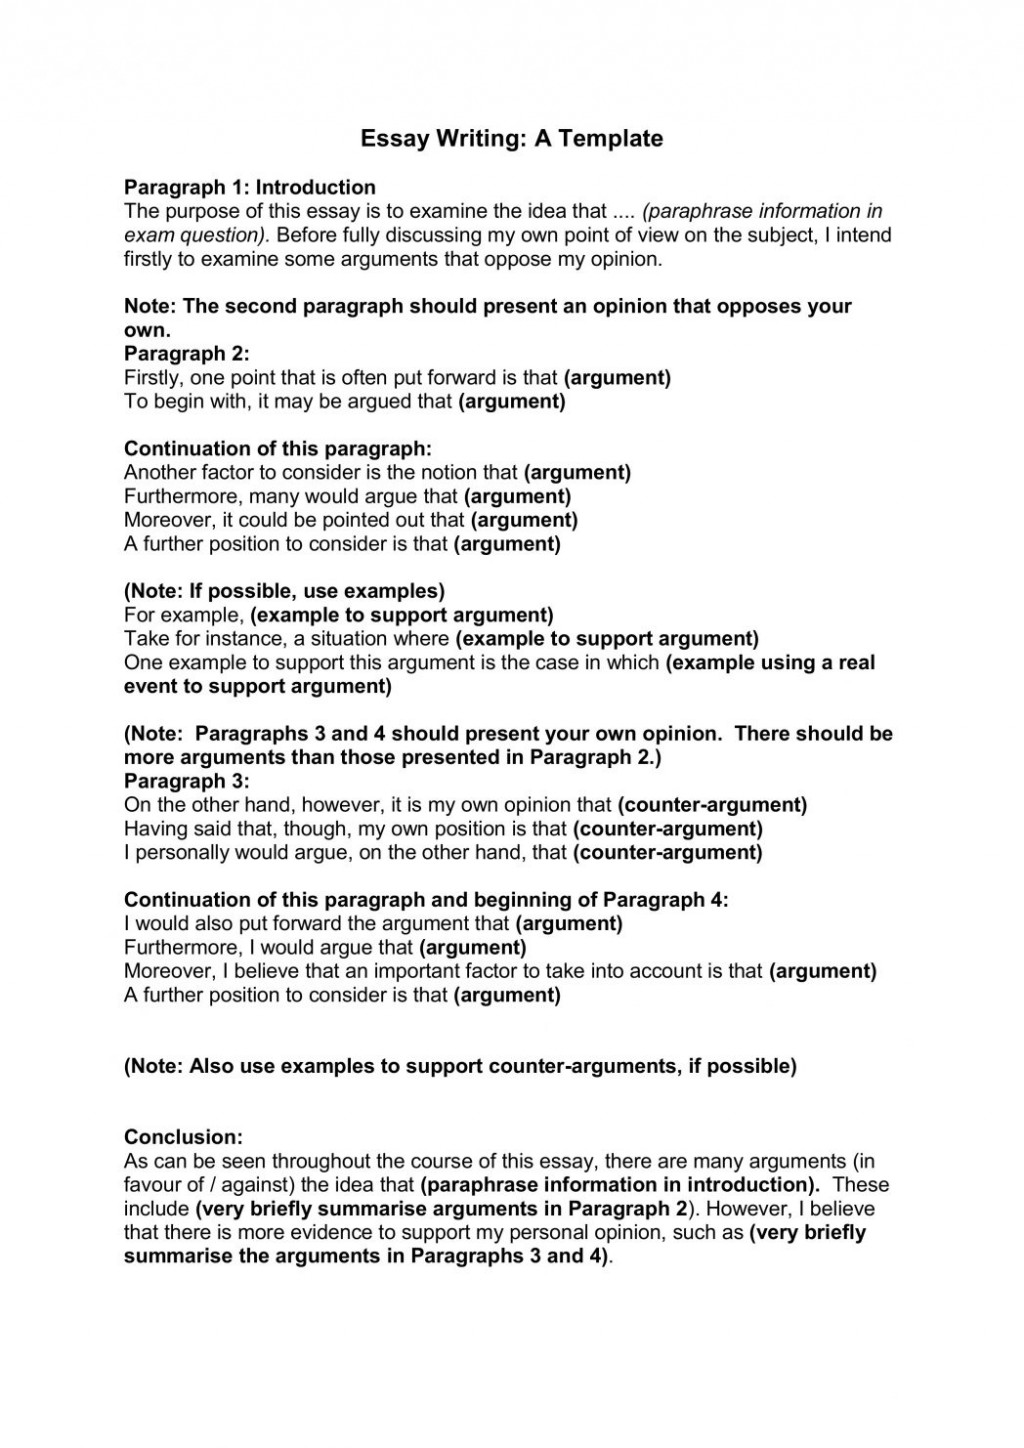 020 How To Begin An Argumentative Essay Writing Essays Cover Letter Thesis Write Ap Lang Template For P Start Conclusion Introduction Statement Step By Pdf Body Paragraph Stirring Large